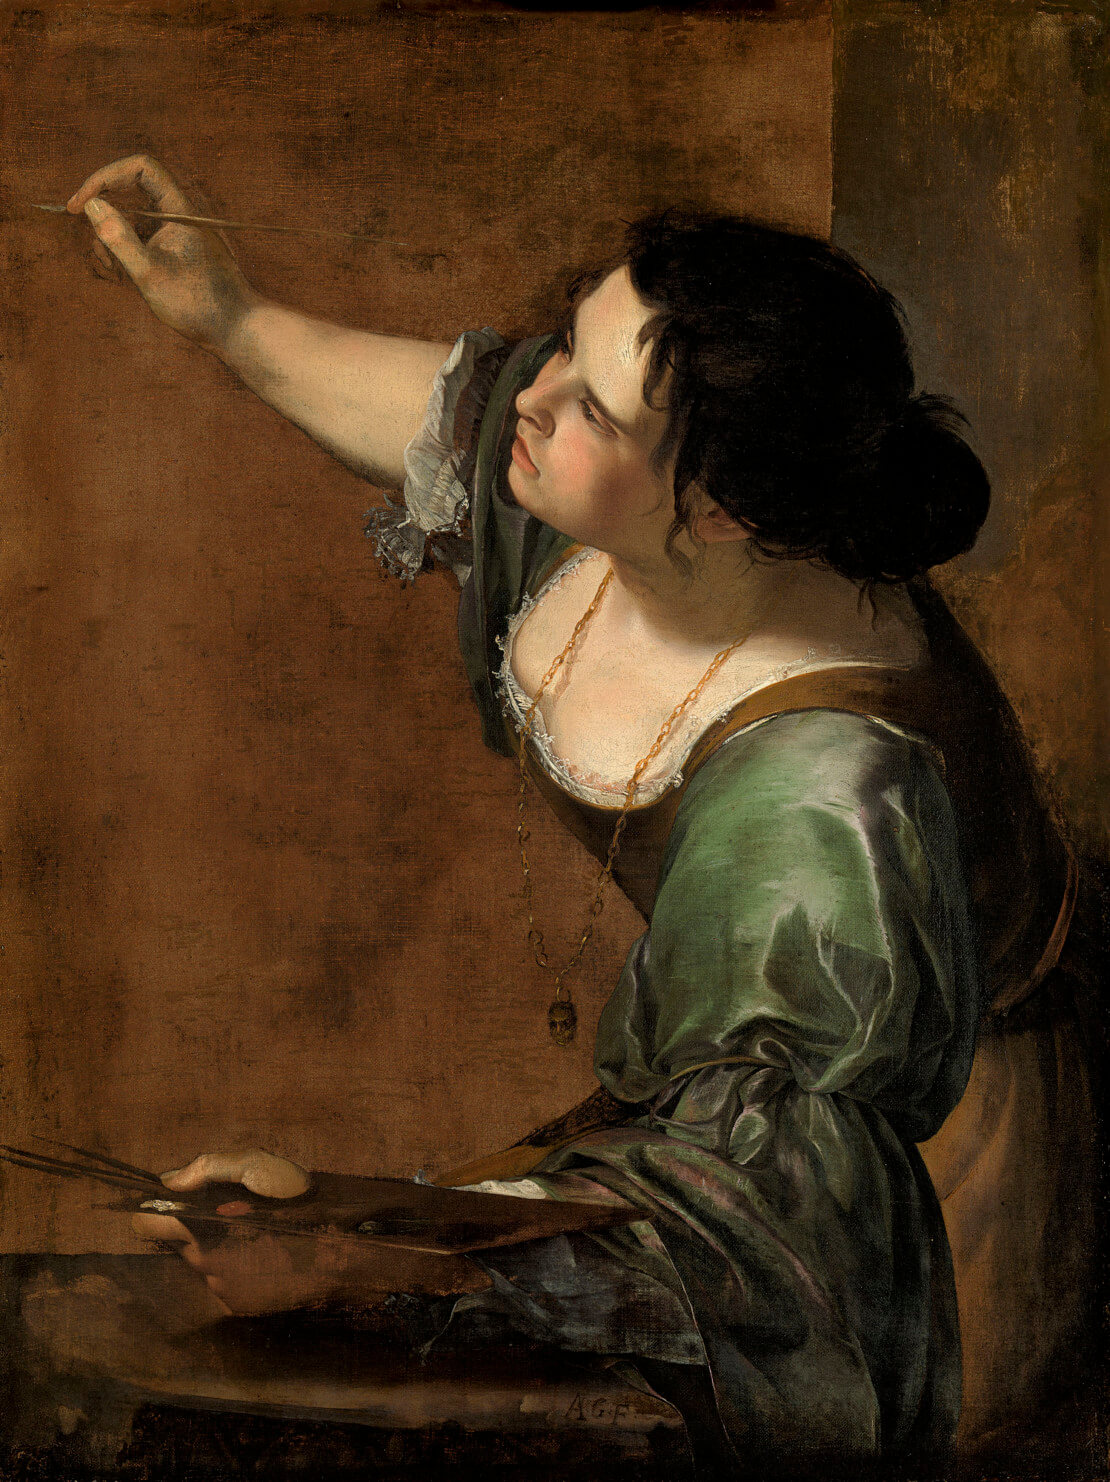 Autoritratto_Allegoria della pittura_Artemisia Gentileschi_1638-39_Royal Collection Windsor_lasinodoro